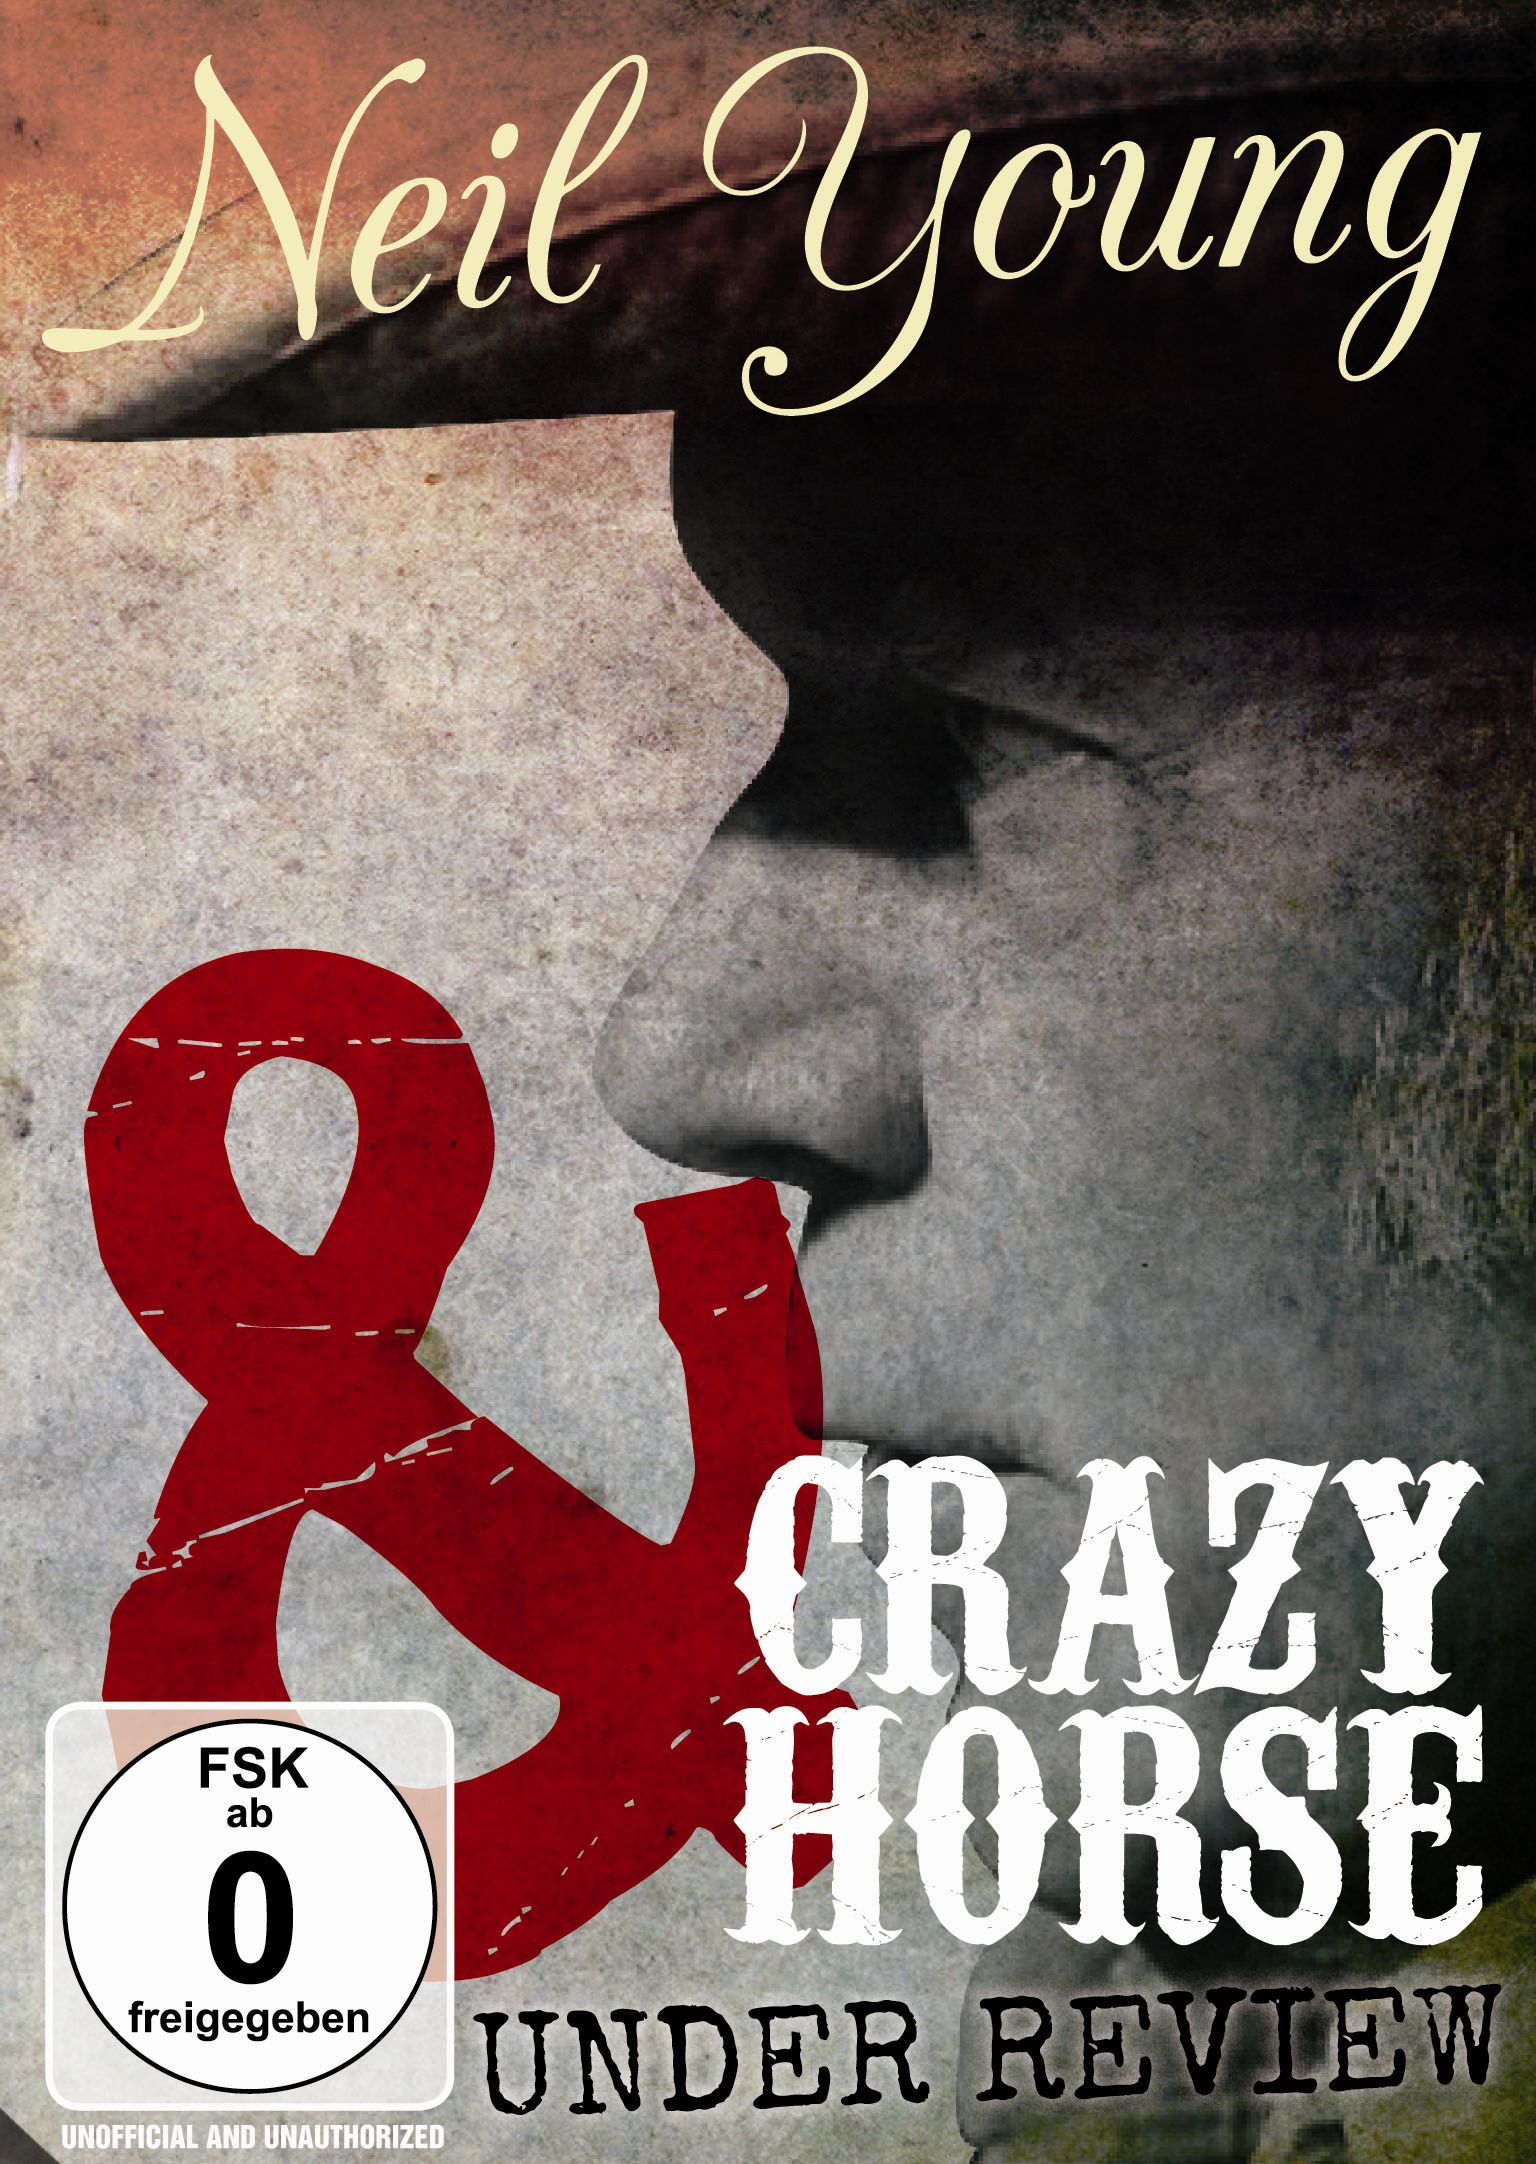 Neil Young & Crazy Horse: Under Review